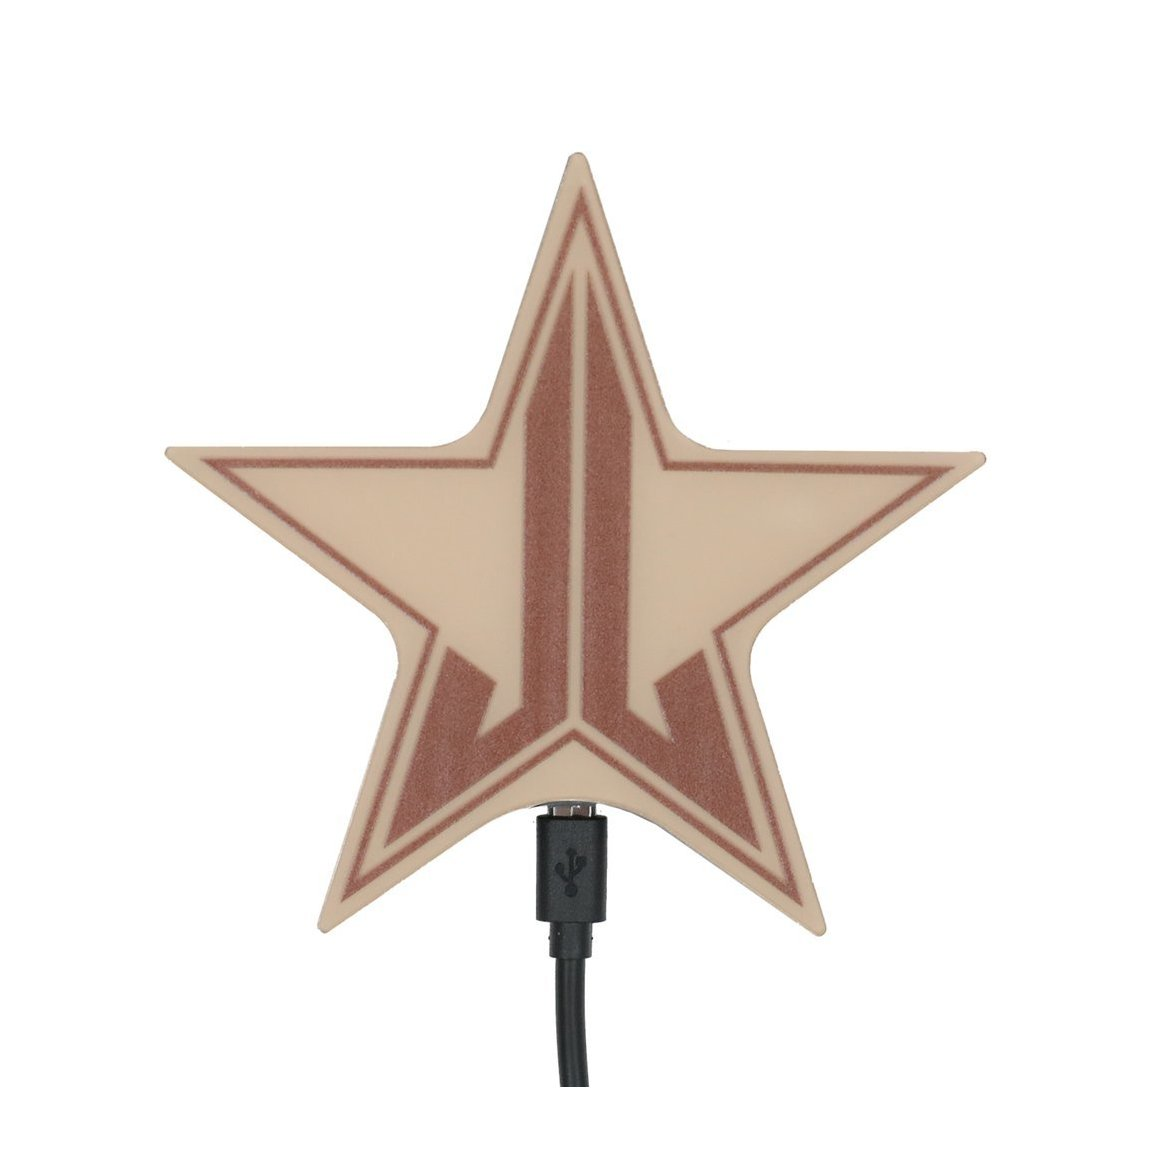 Jeffree Star Cosmetics Star Nude Wireless Charger product swatch.